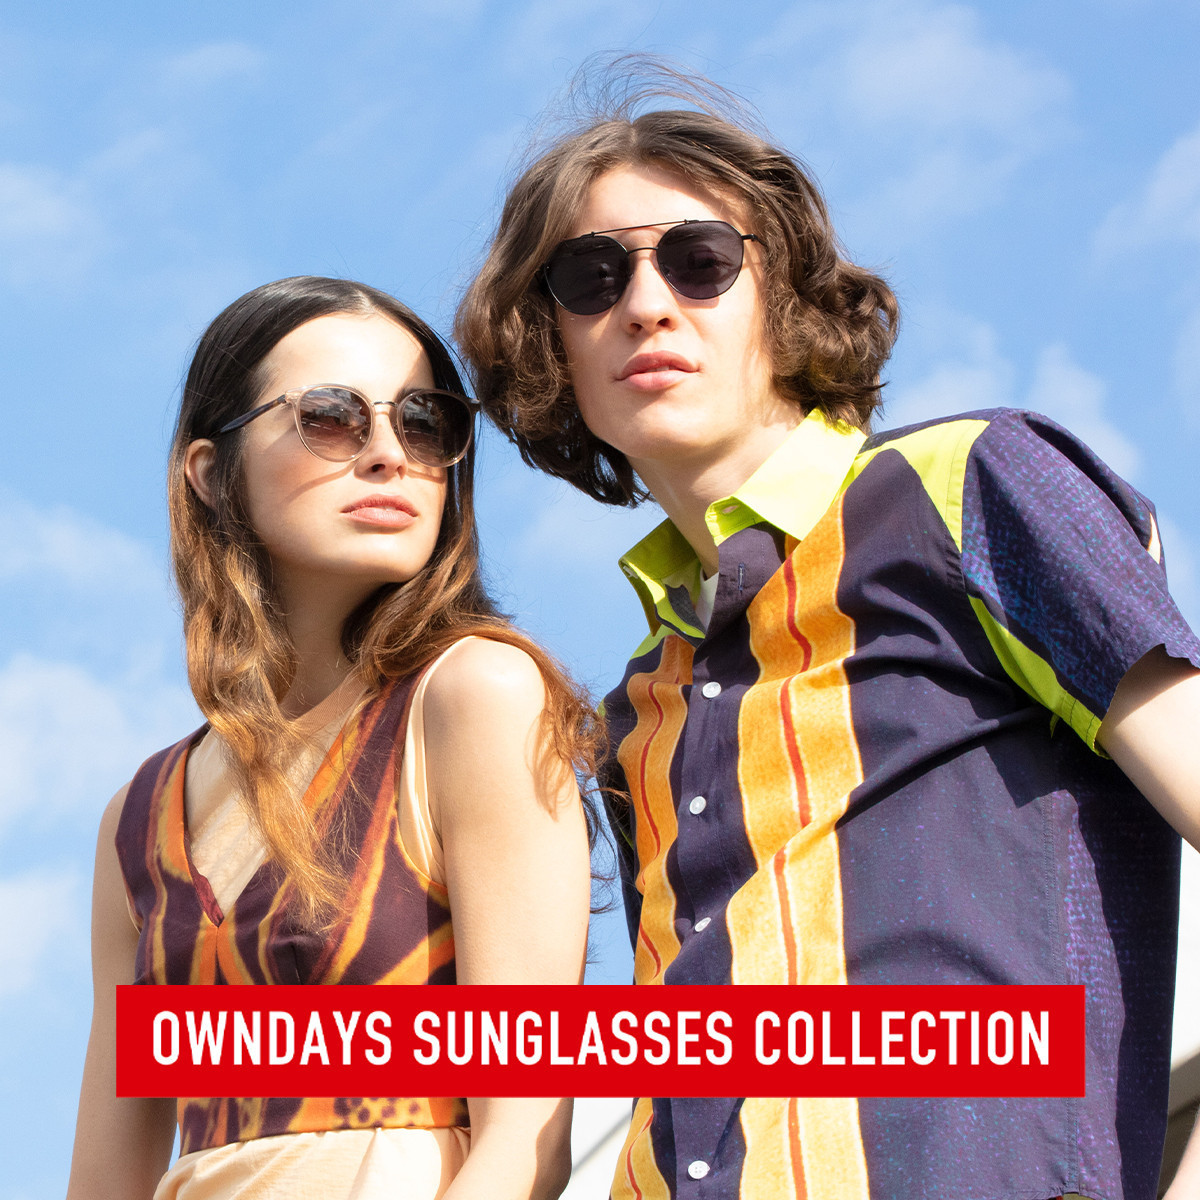 OWNDAYS SUNGLASSES COLLECTION 2020